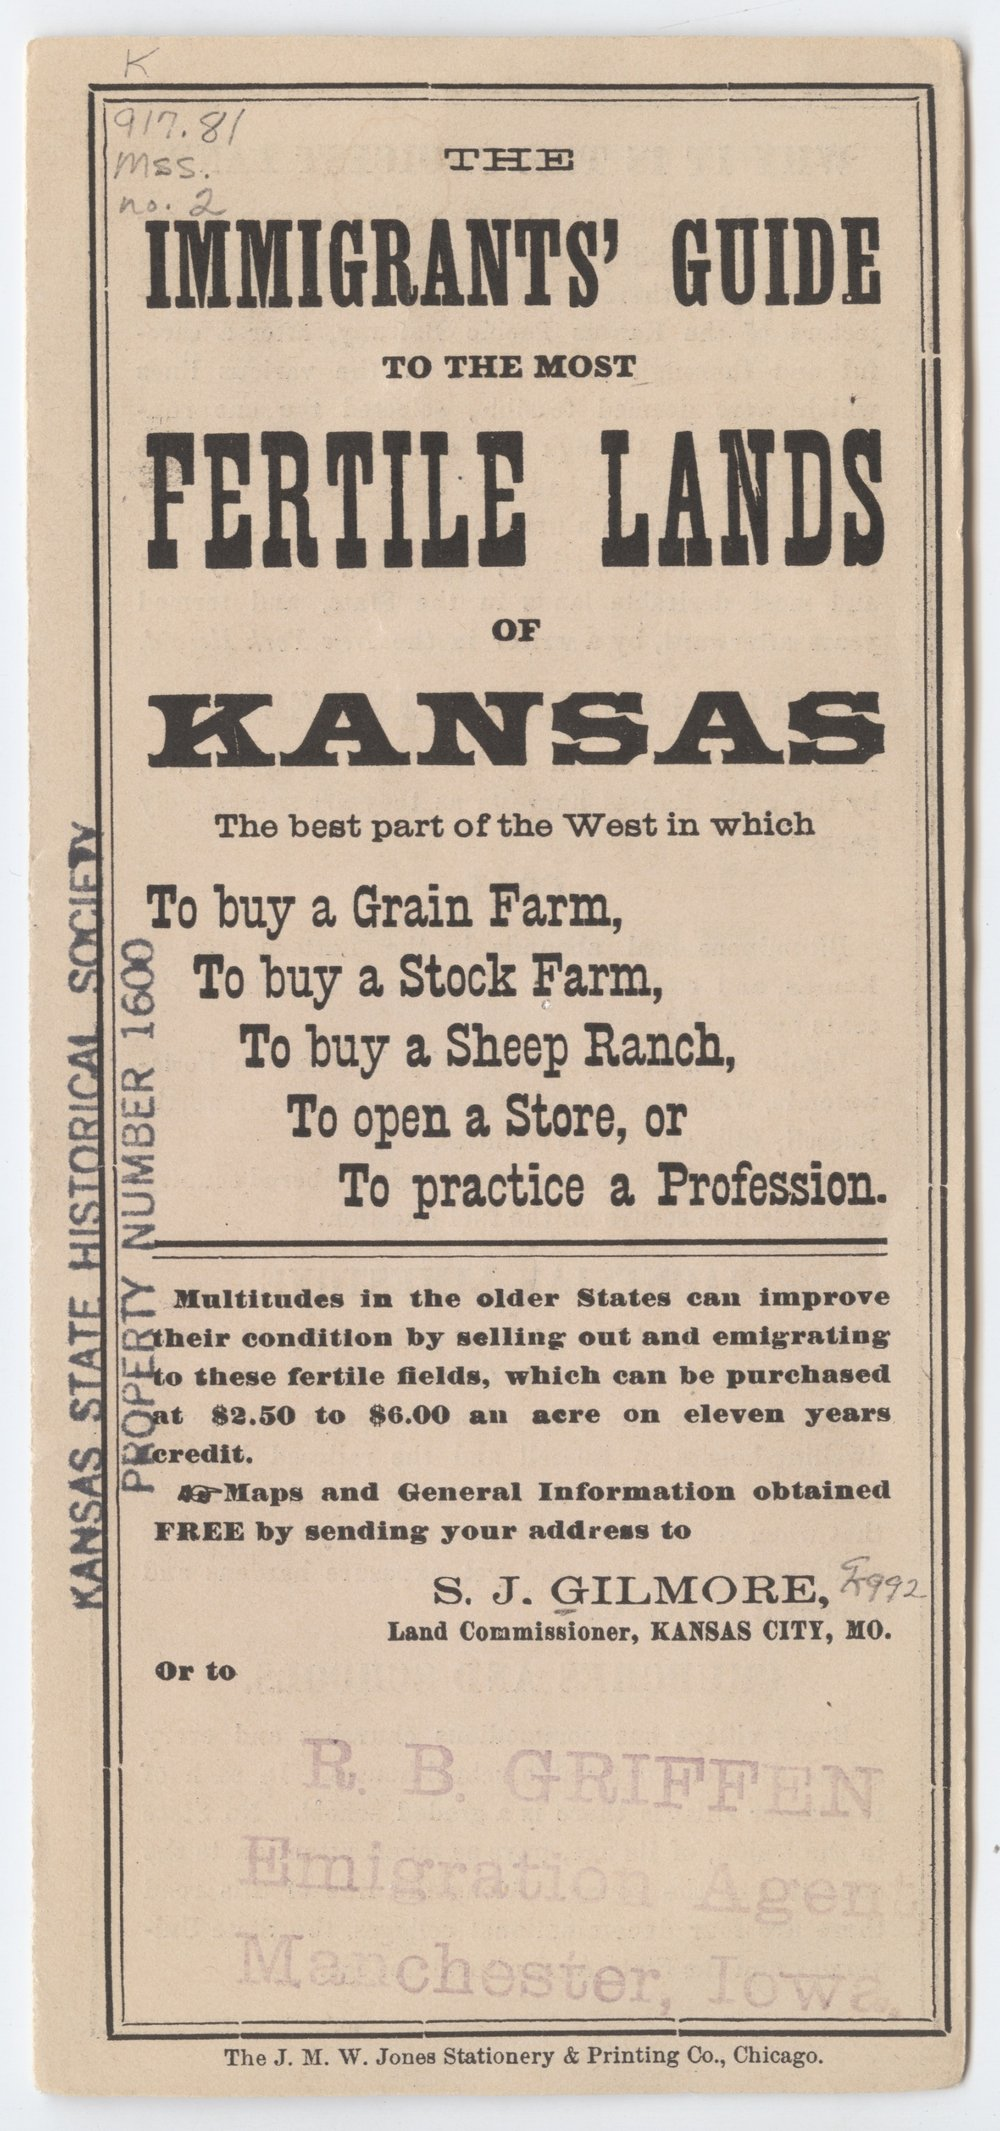 Immigrants' guide to the most fertile lands of Kansas - 1